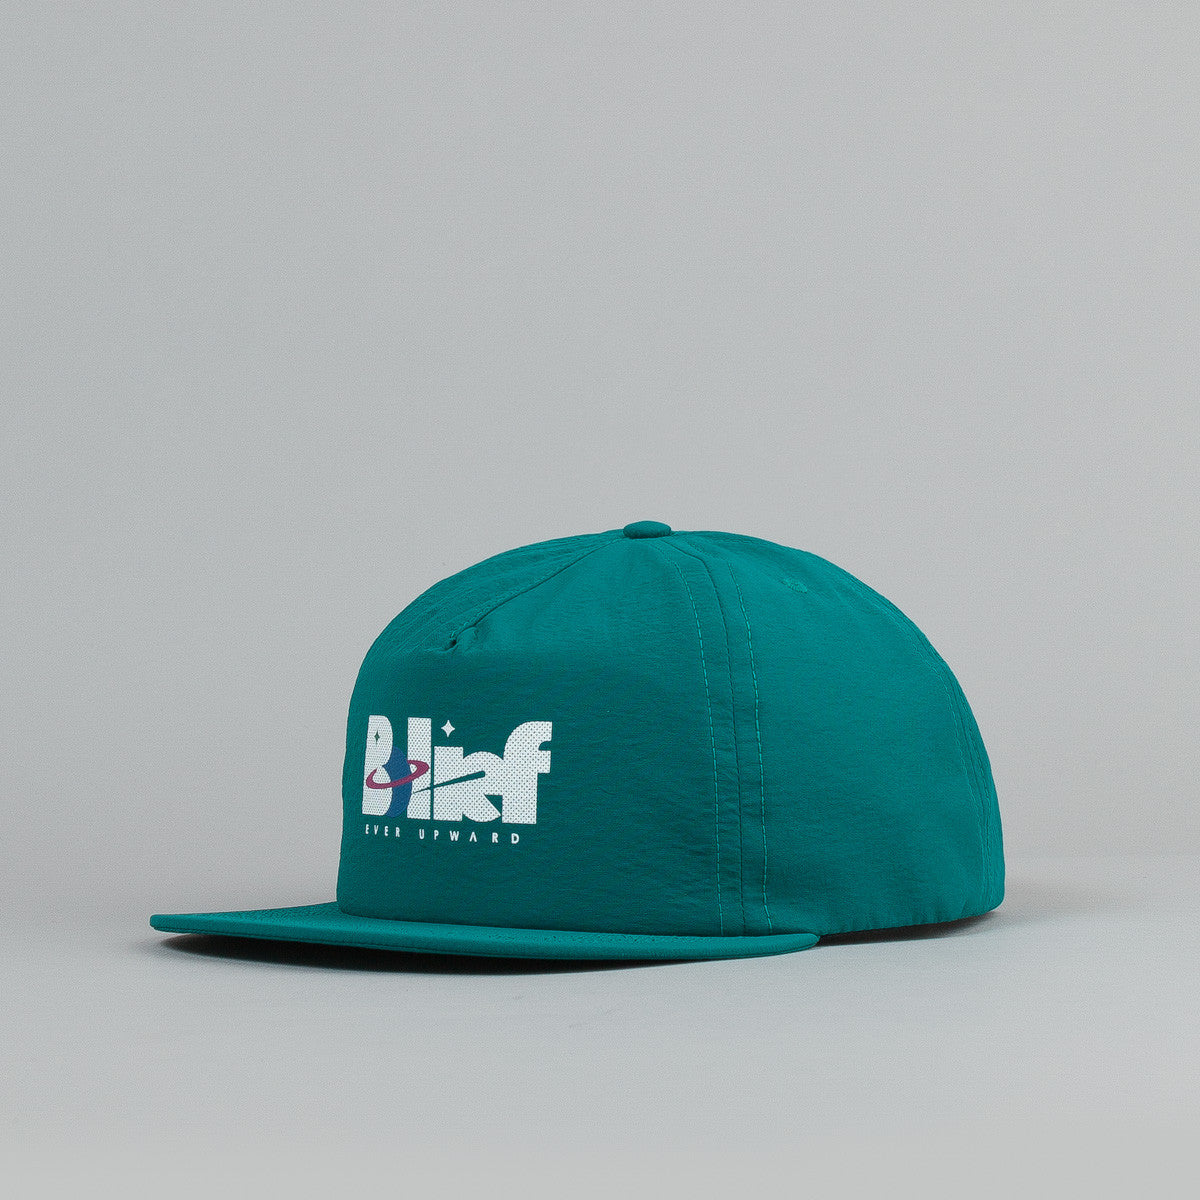 Belief Exploration Snapback Cap